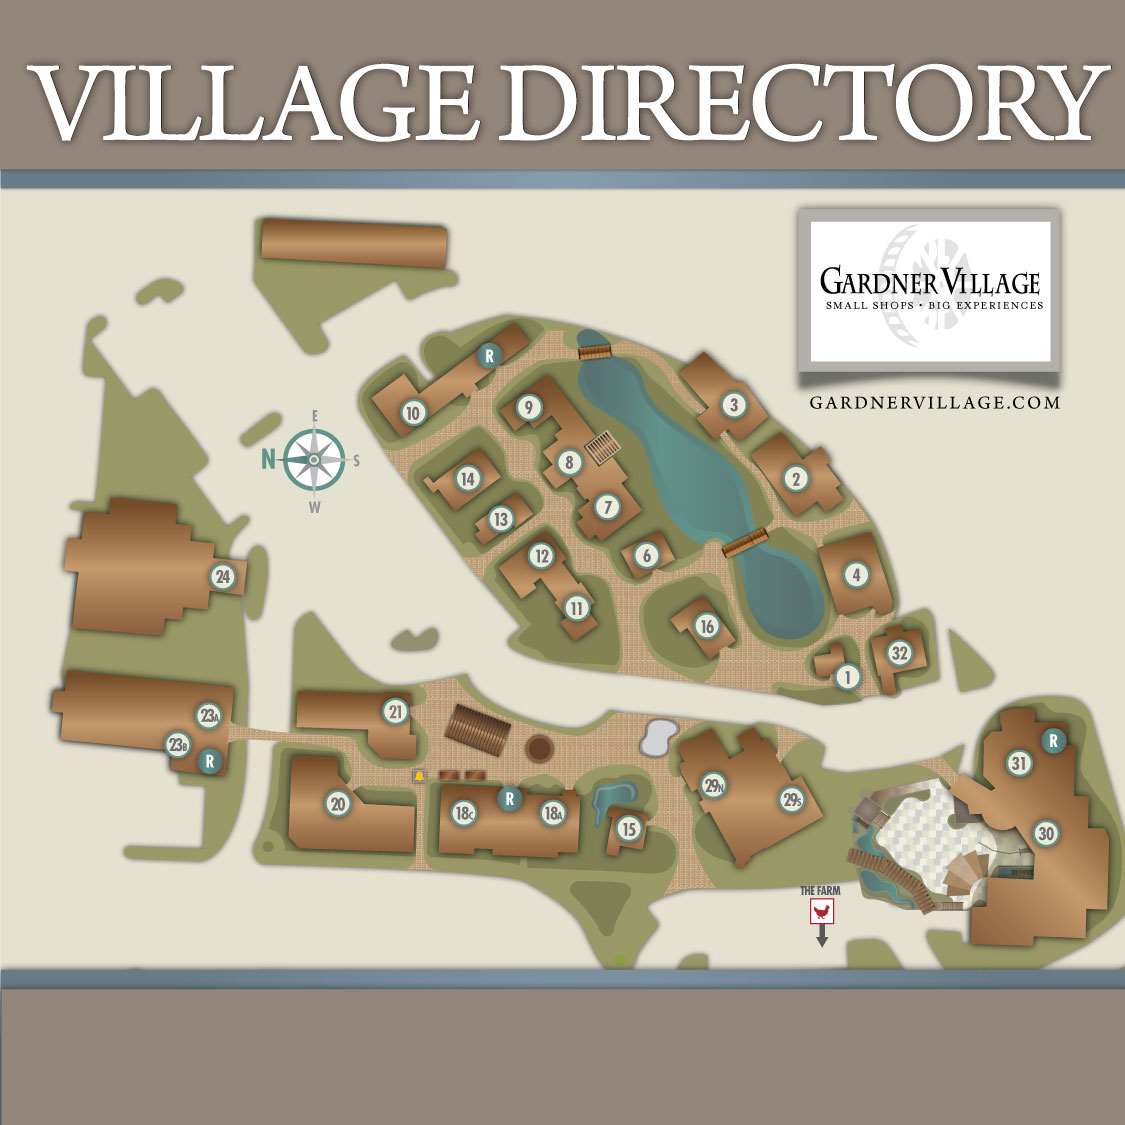 gardner village property map